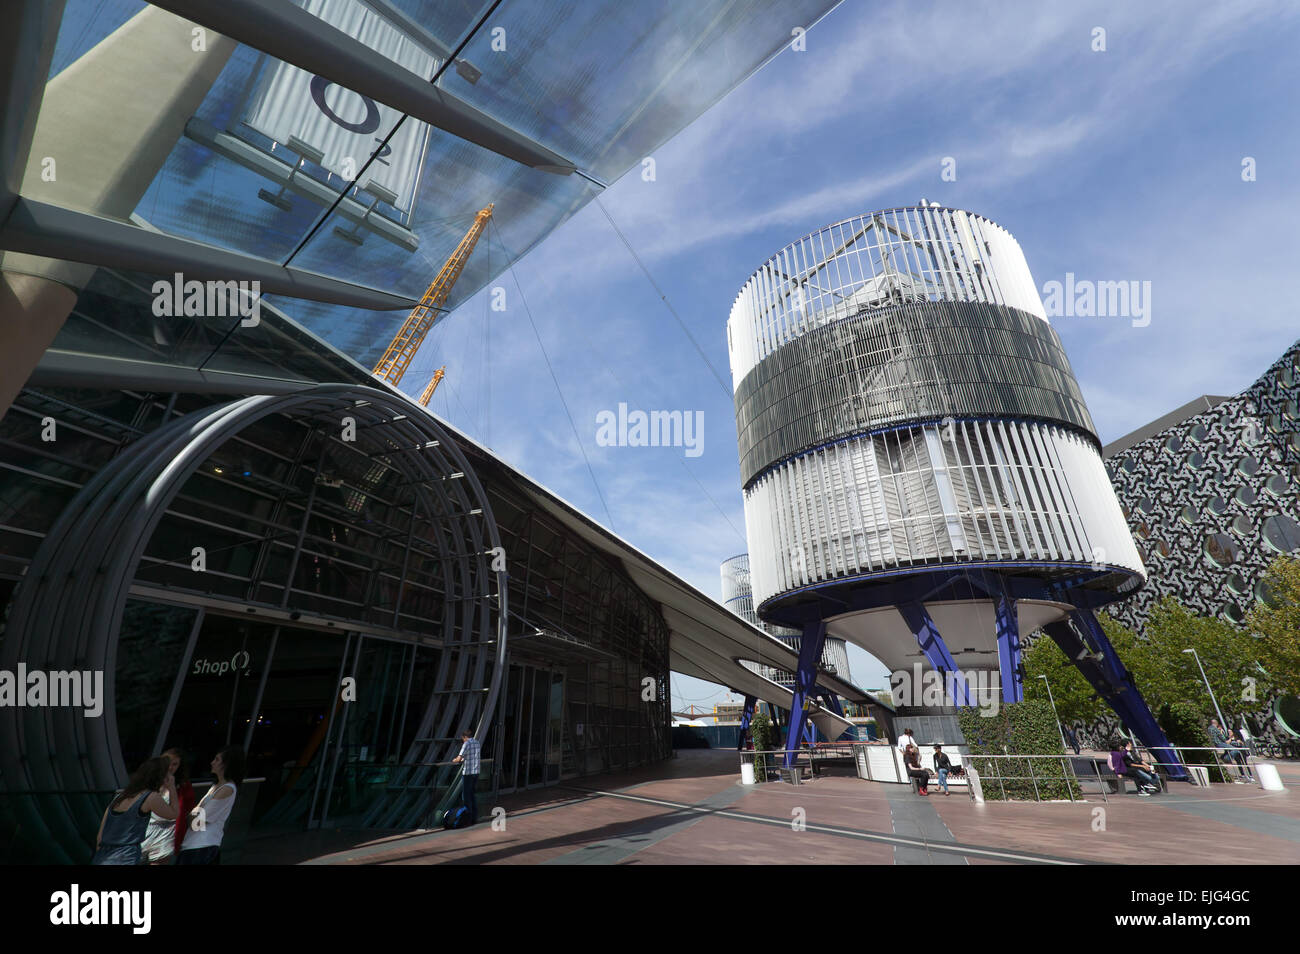 View of Peninsular Square looking towards the entranced to the O2 arena, on  the  Greenwich peninsula. - Stock Image